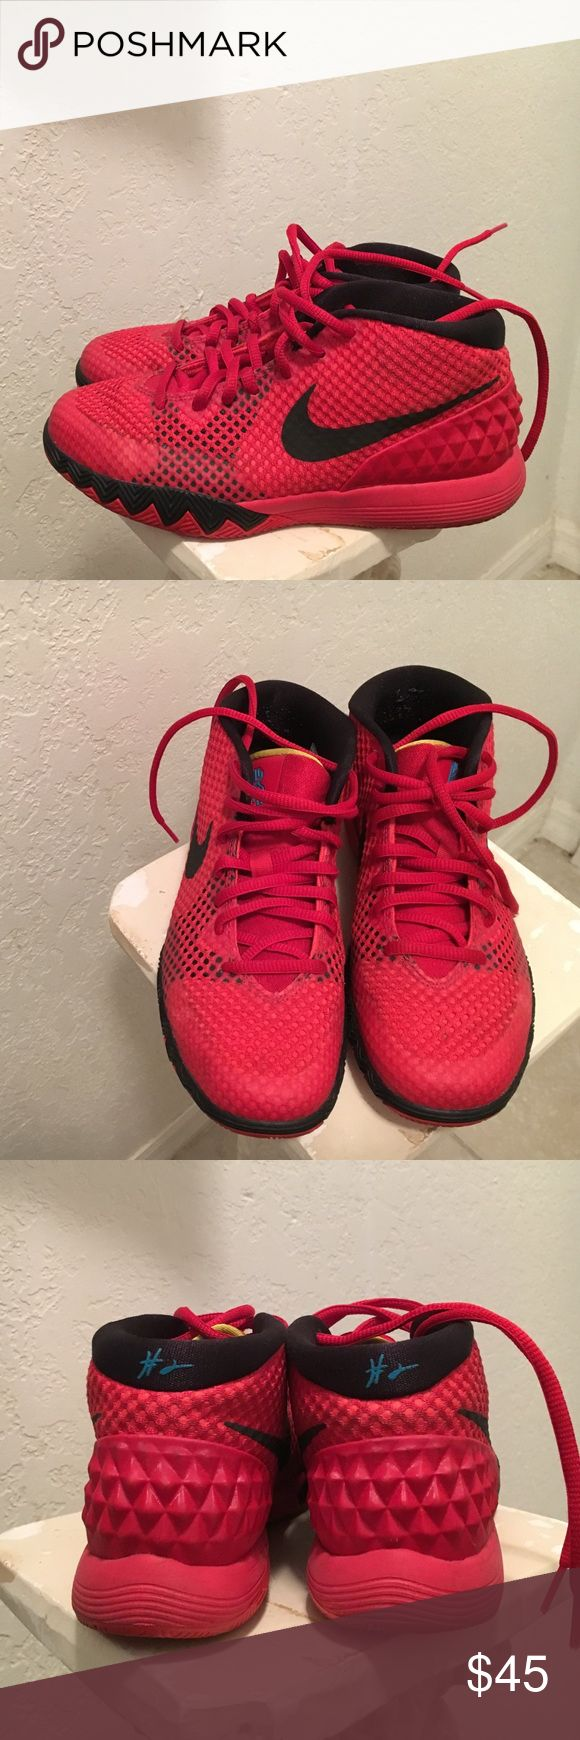 Kyrie Irving's boys sneakers Like New Kyrie's boys size 3 so fits a woman's size 6. Only worn twice! Perfect condition. Nike Shoes Sneakers